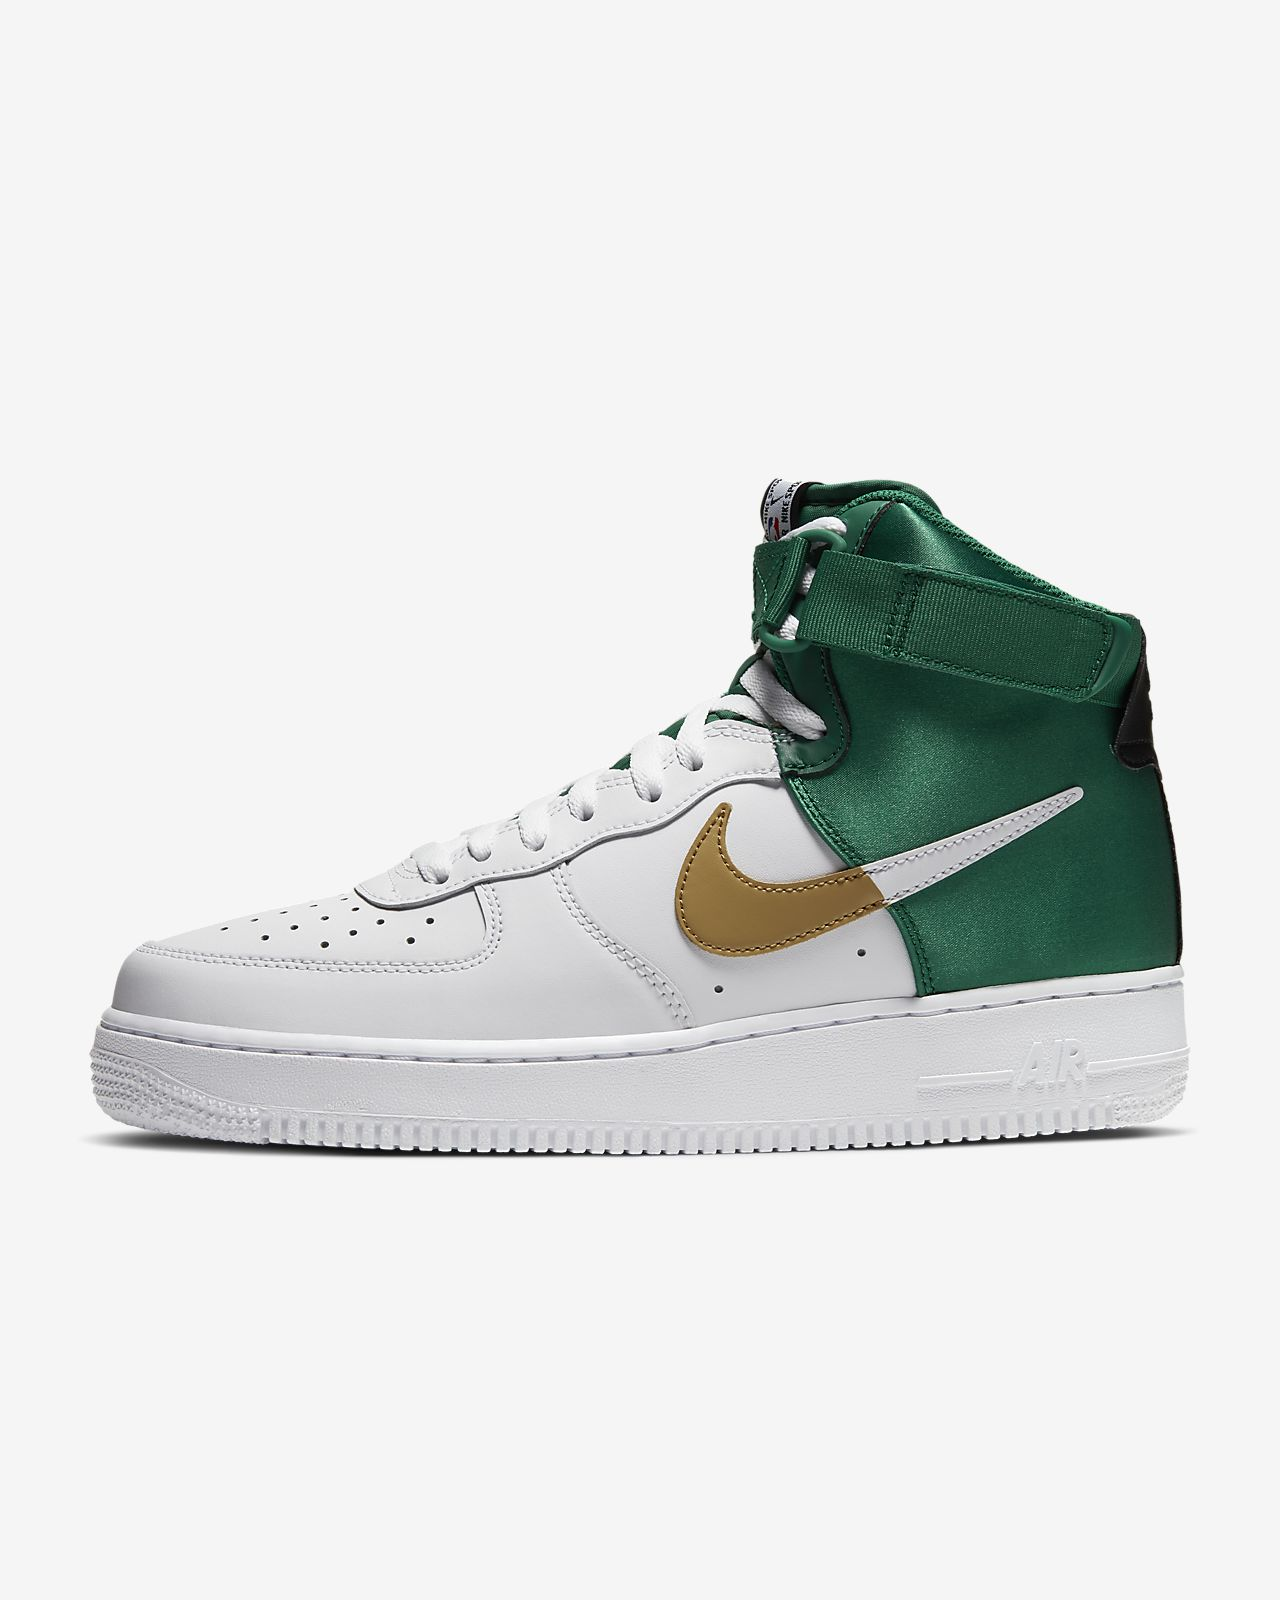 Nike Air Force 1 High '07 LV8 1 男子运动鞋